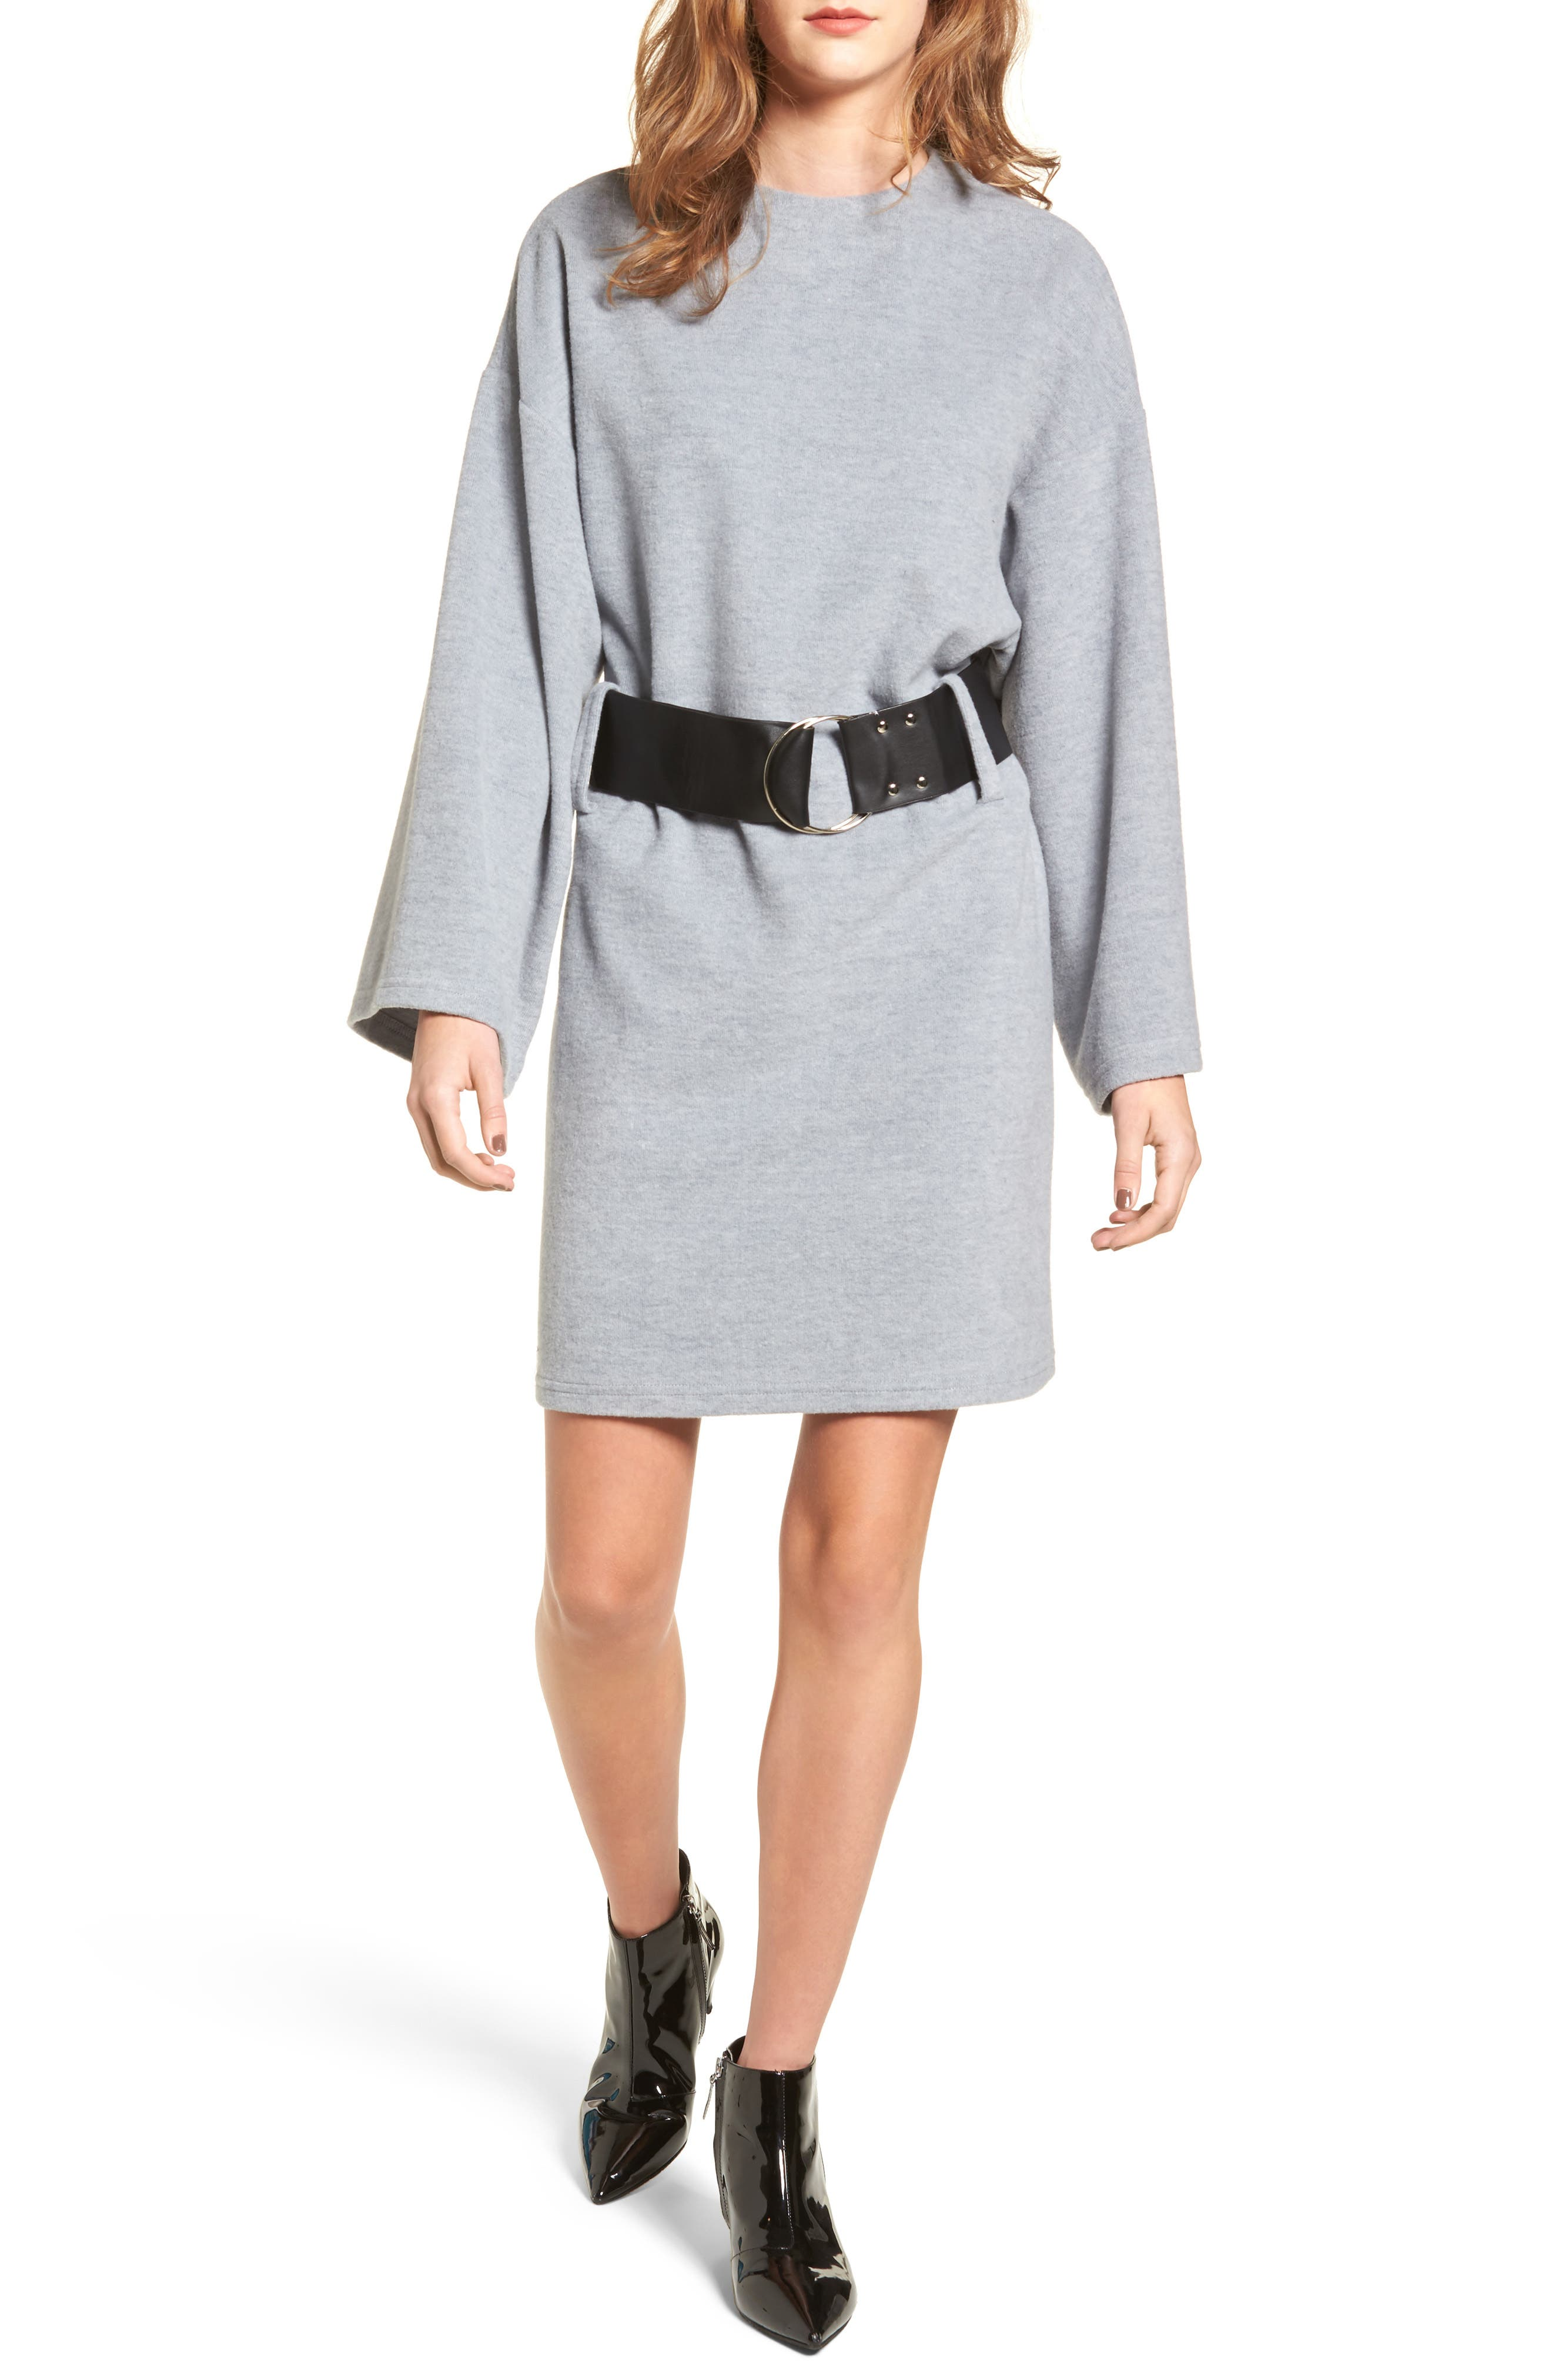 Alternate Image 1 Selected - LOST INK Belted Bell Sleeve Sweater Dress